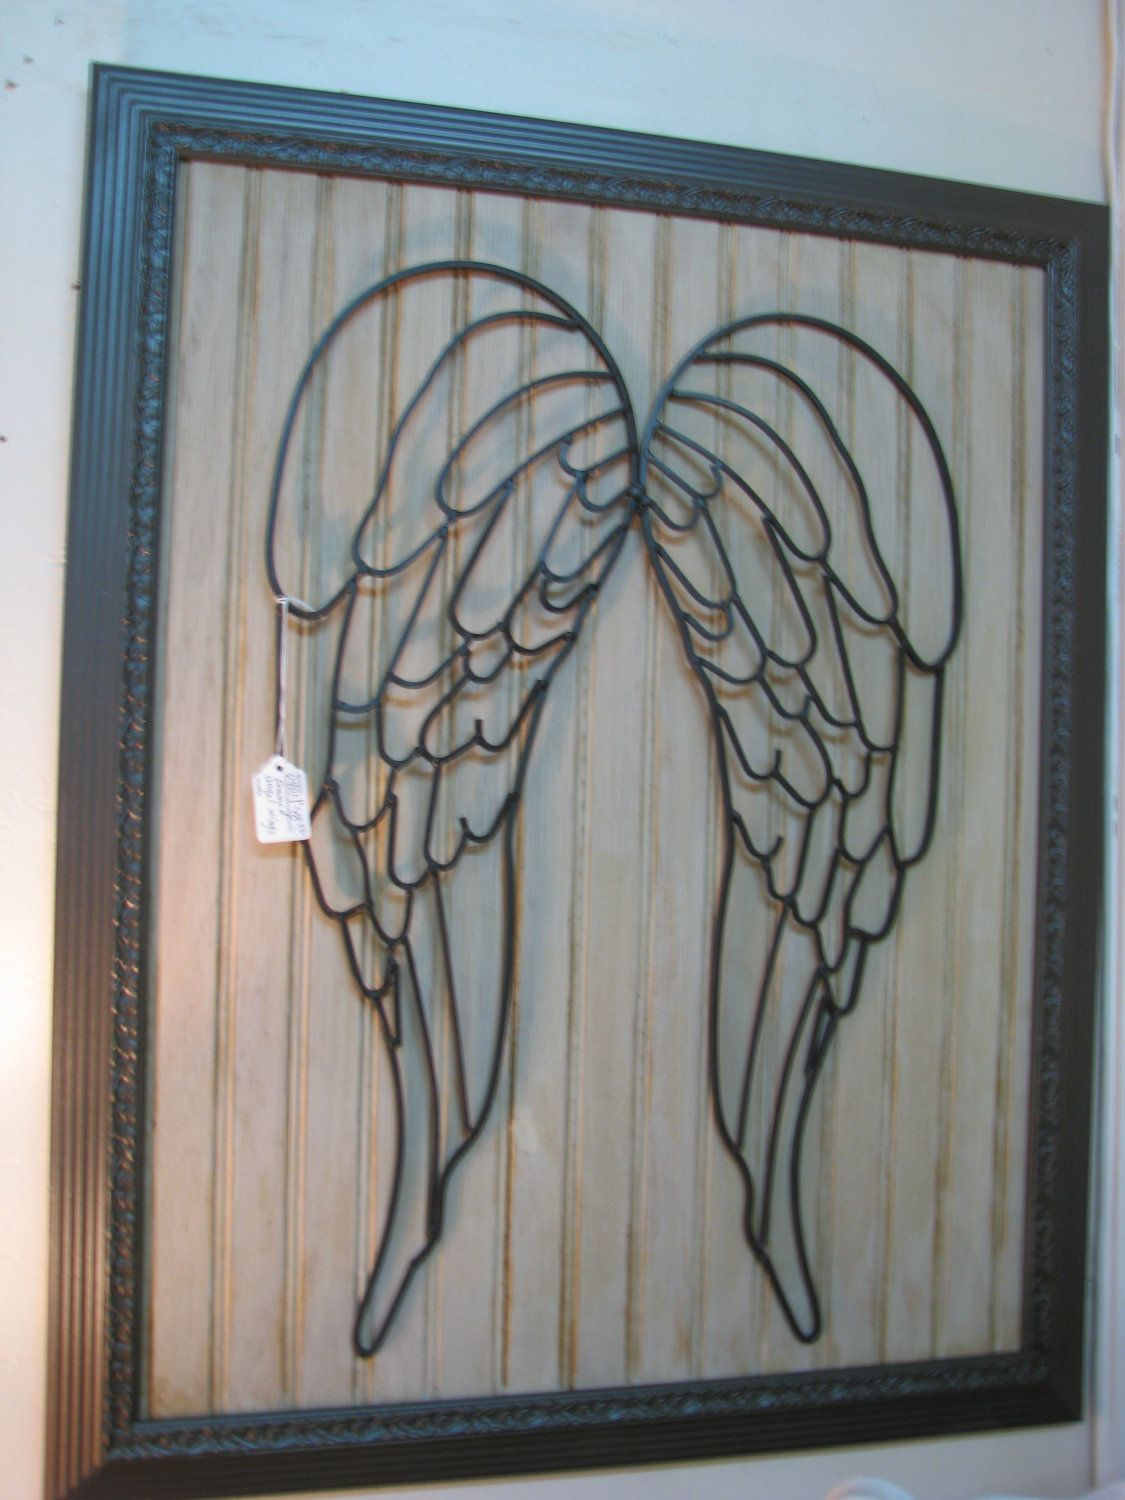 Shabby Chic, Rustic, Faith, Framed Angel Wings Home Decor Wall Art. $59.95